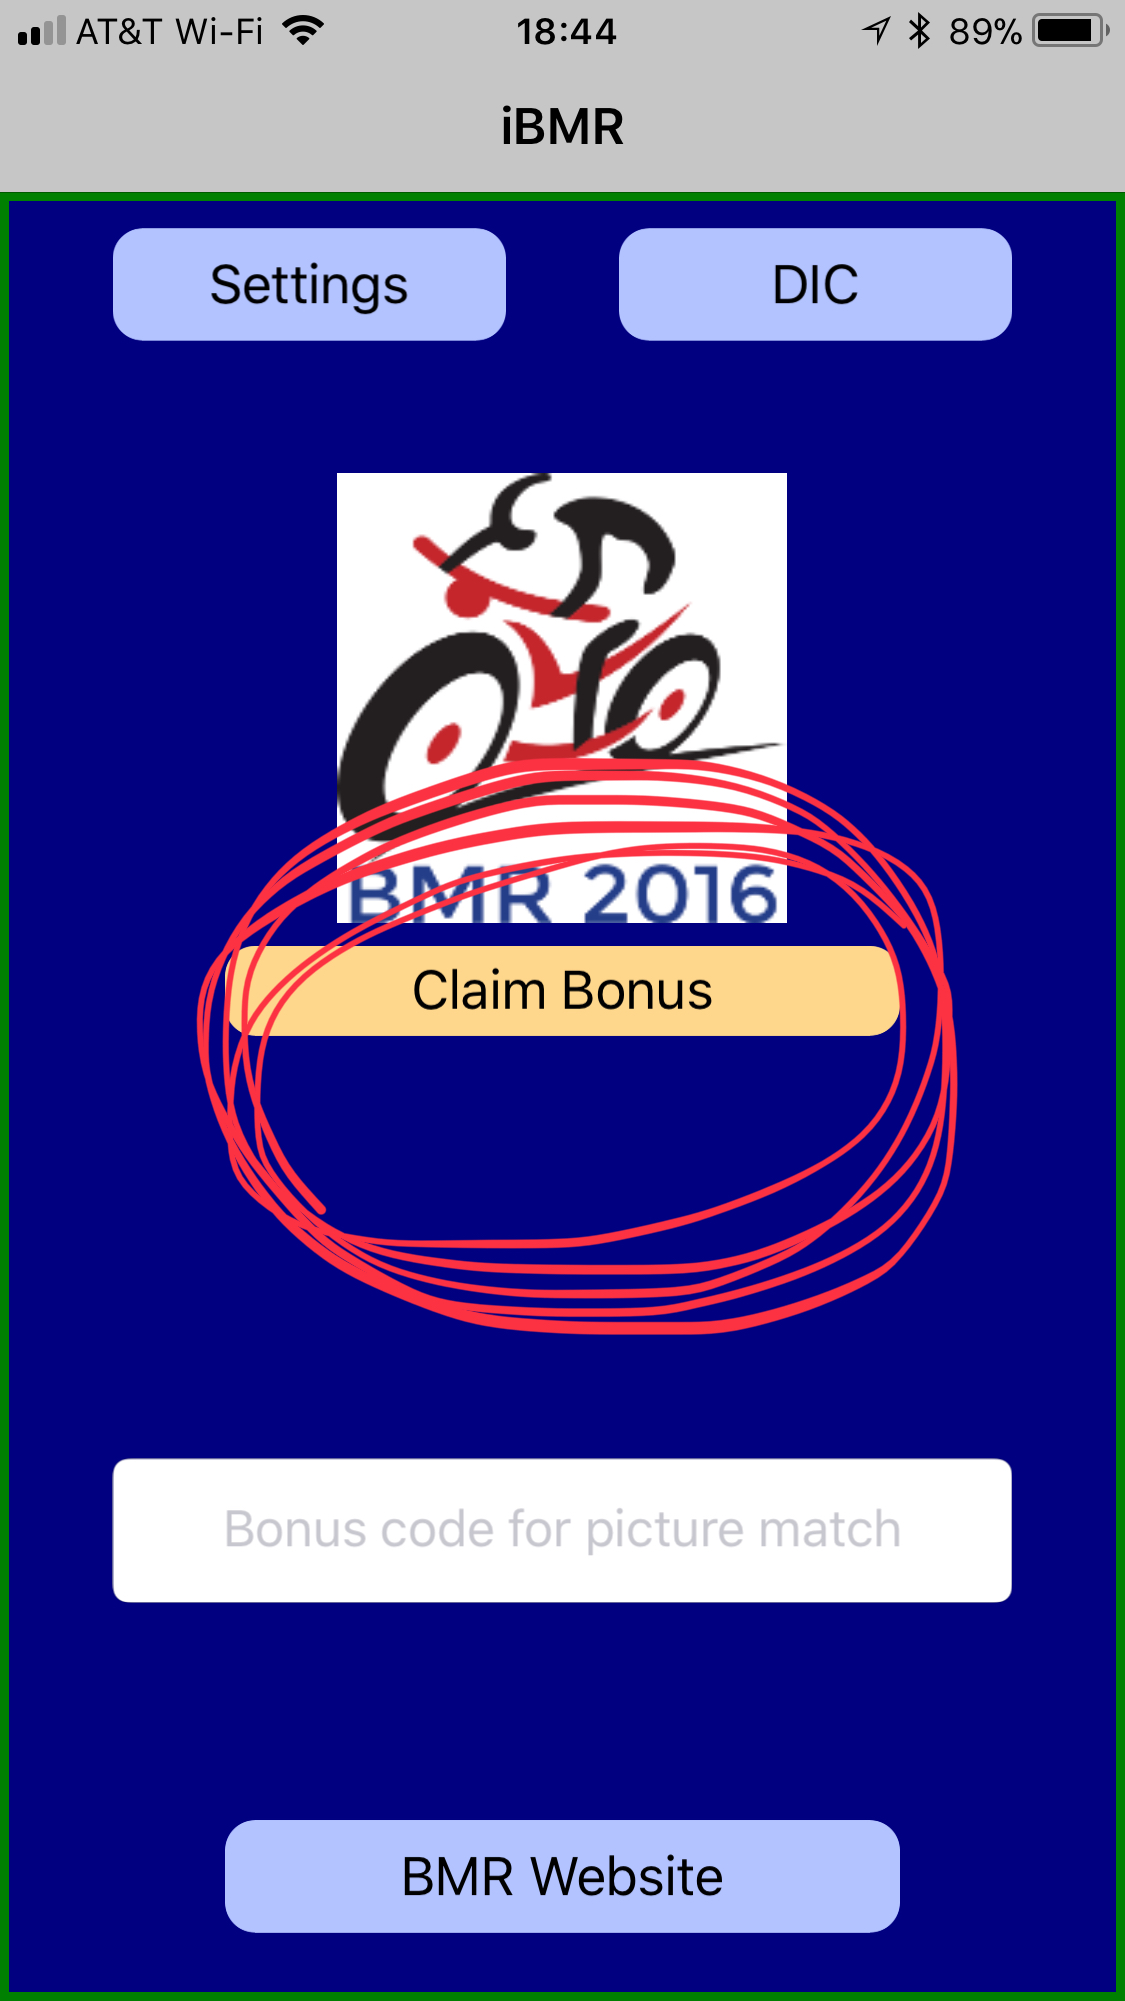 """If you are using the original version of the app,the DIC/HIC/MIC is locked in when you use tap the """"Claim Bonus"""" button."""